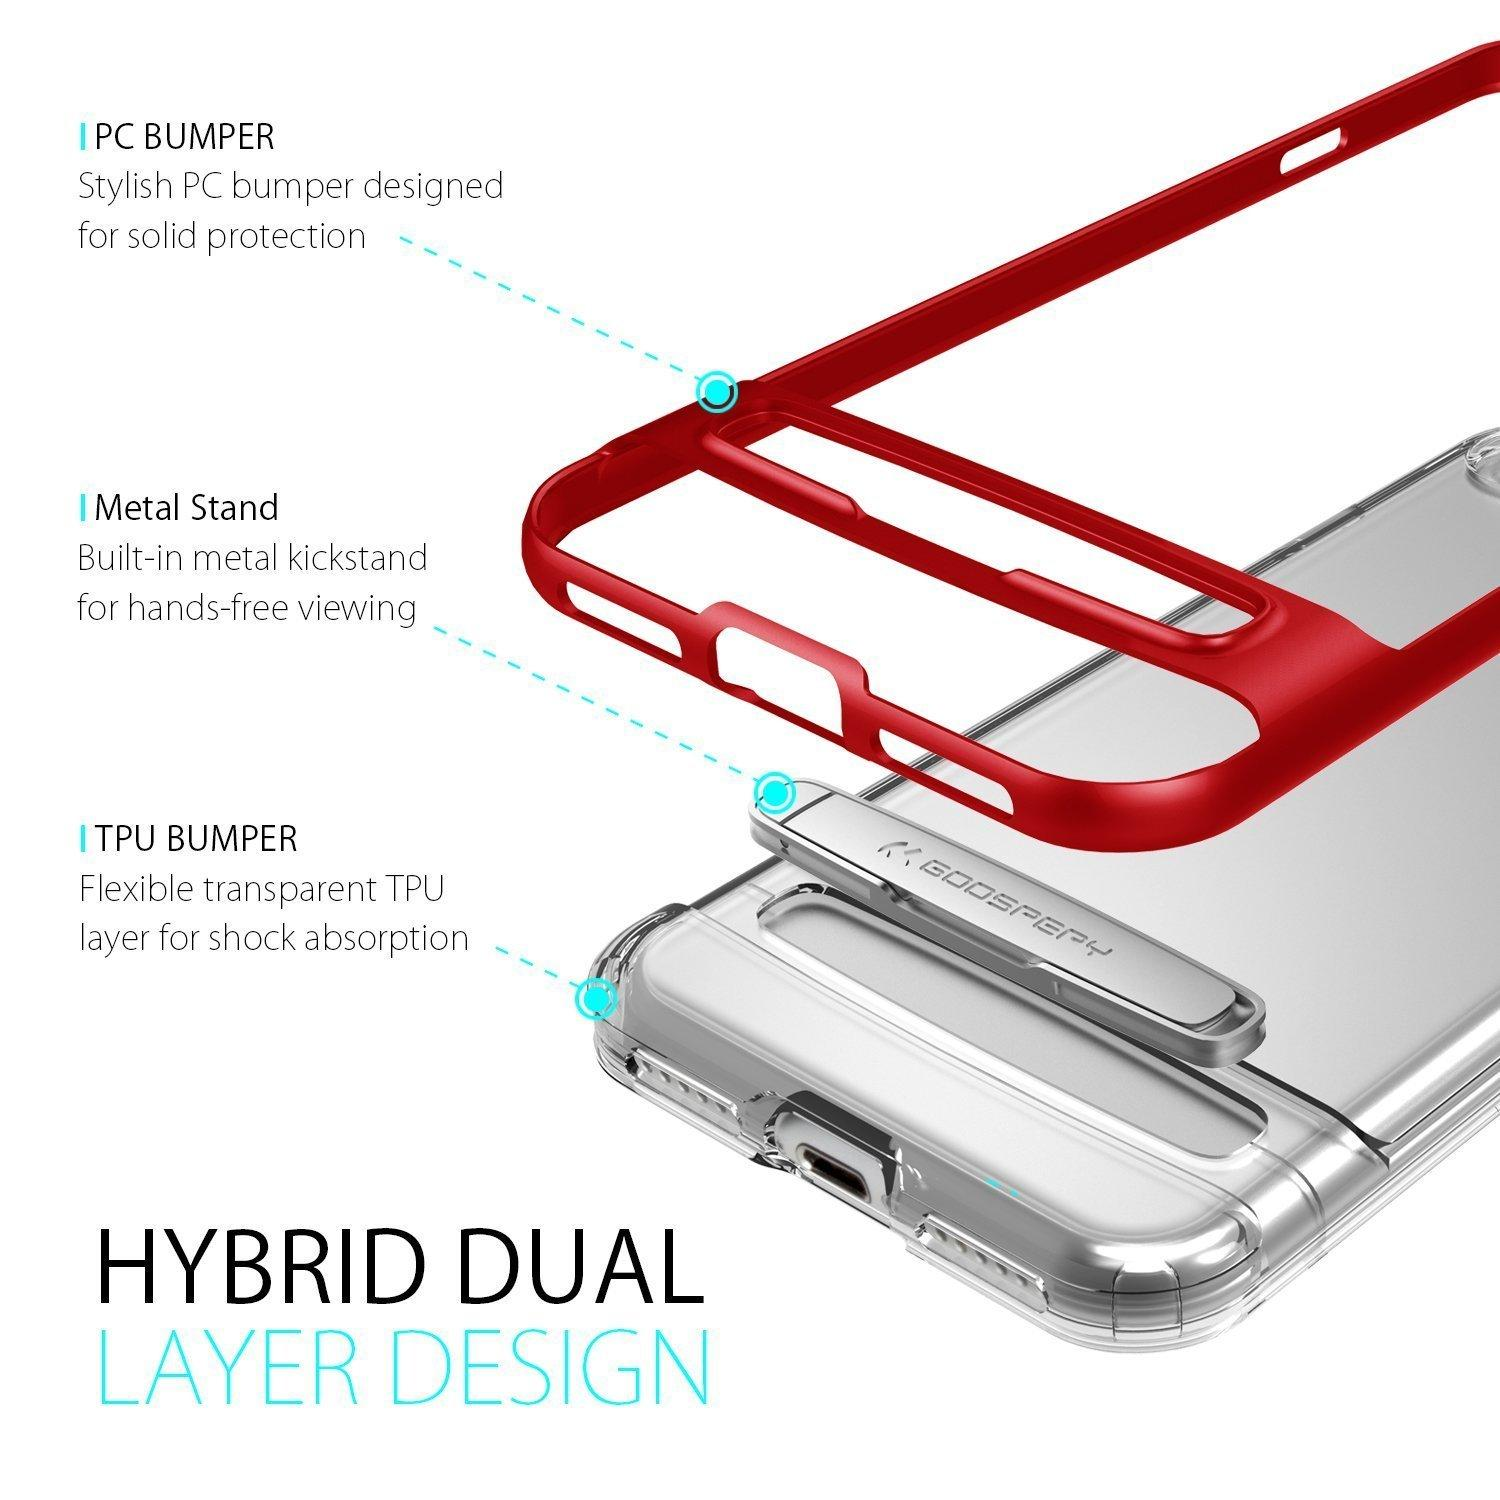 Fitur Mercury Dream Bumper Hybrid Case For Iphone X Red Dan Harga Goospery Soft Feeling Jelly Mint Detail Gambar Terbaru